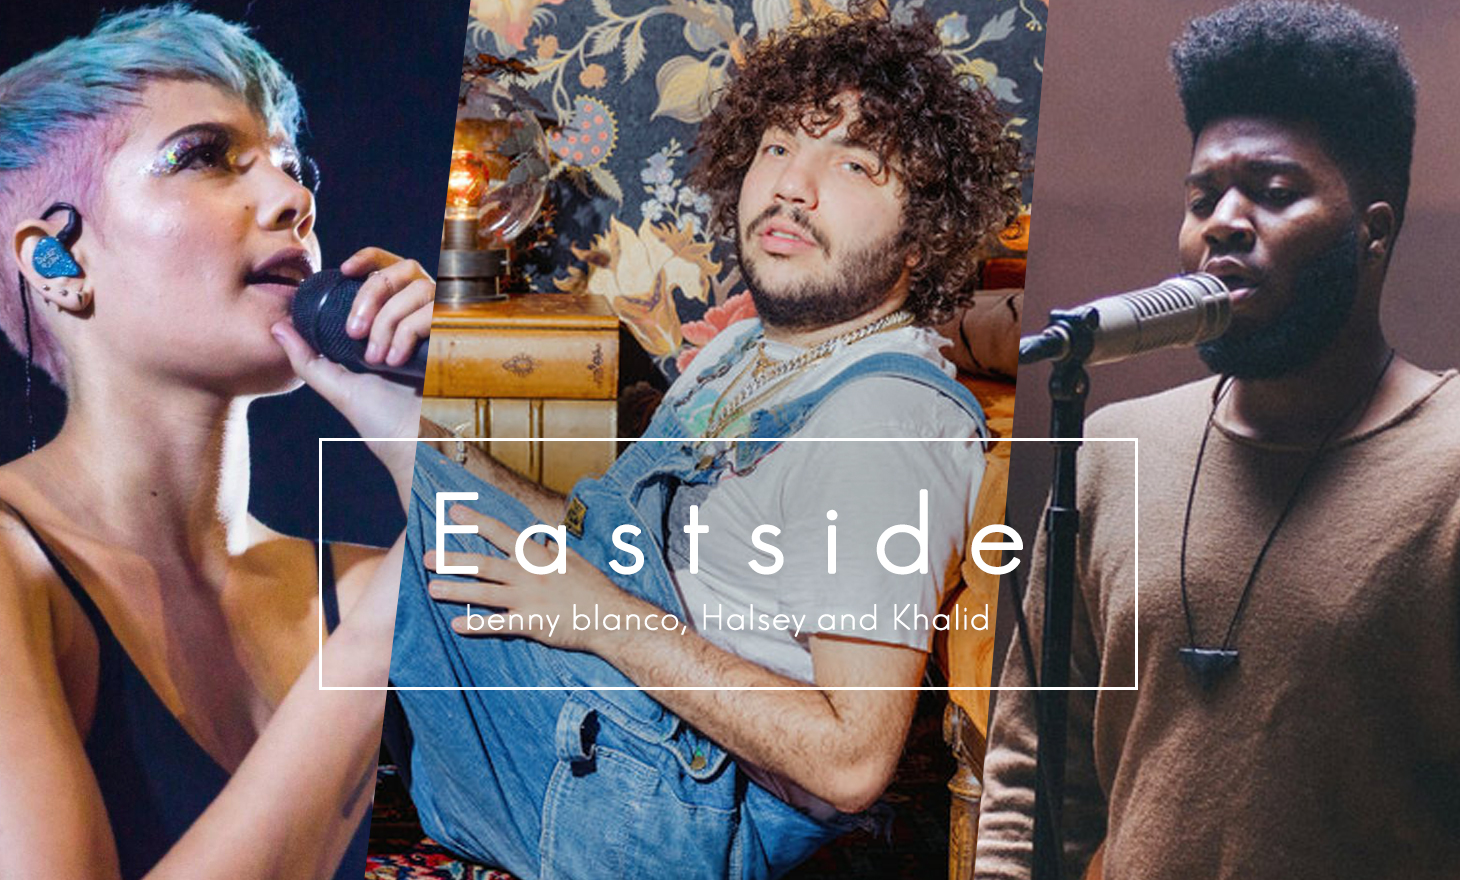 Eastside : benny blanco, Halsey and Khalid